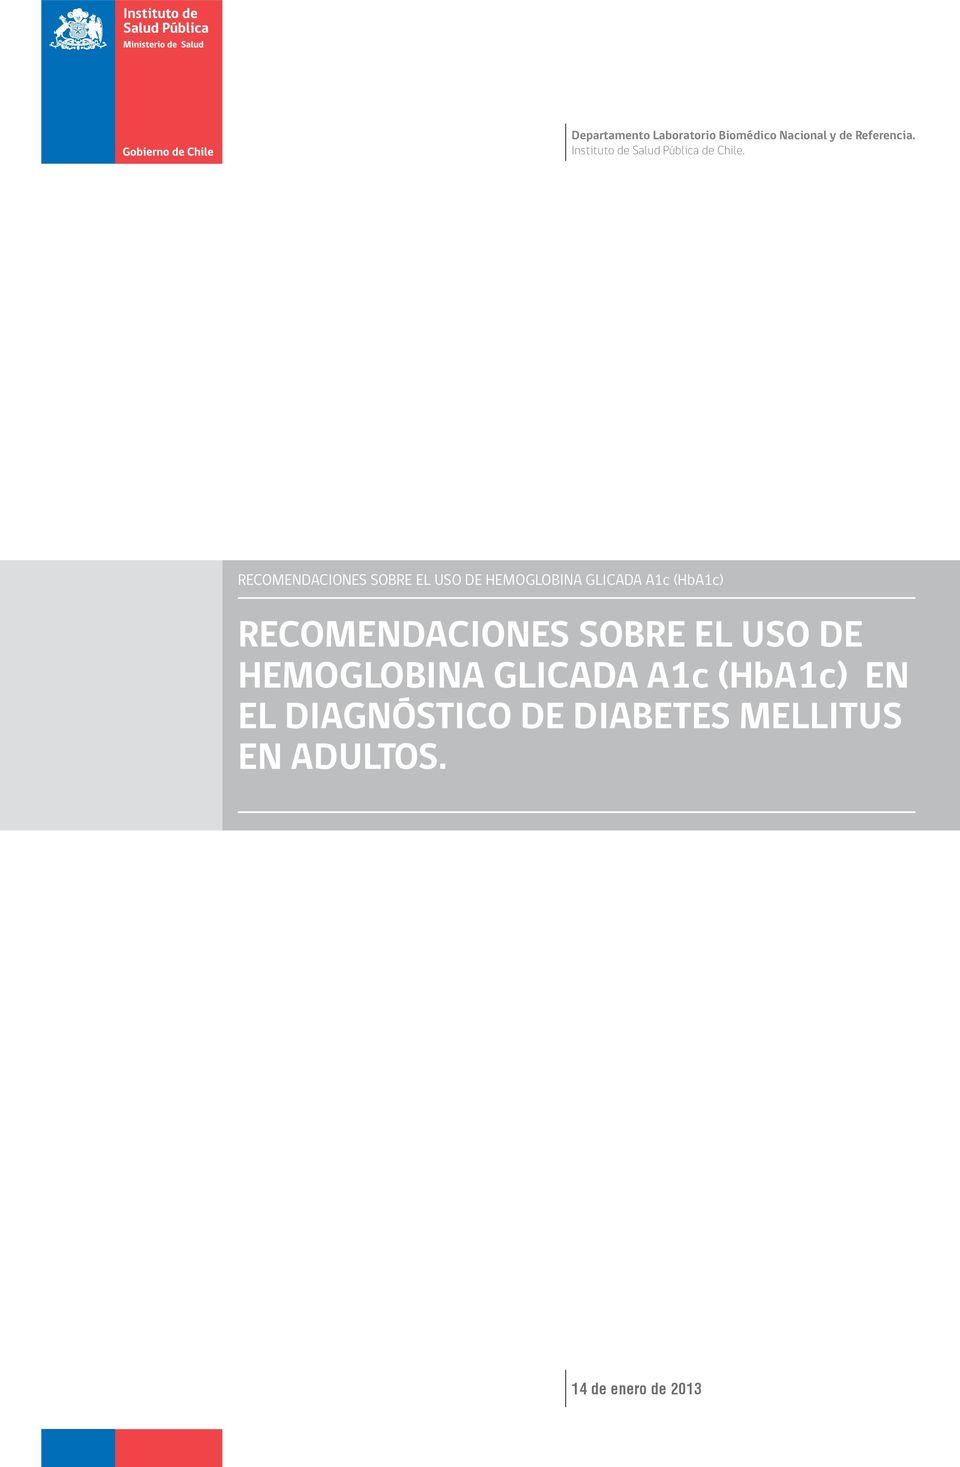 DIAGNÓSTICO DE DIABETES MELLITUS EN ADULTOS.